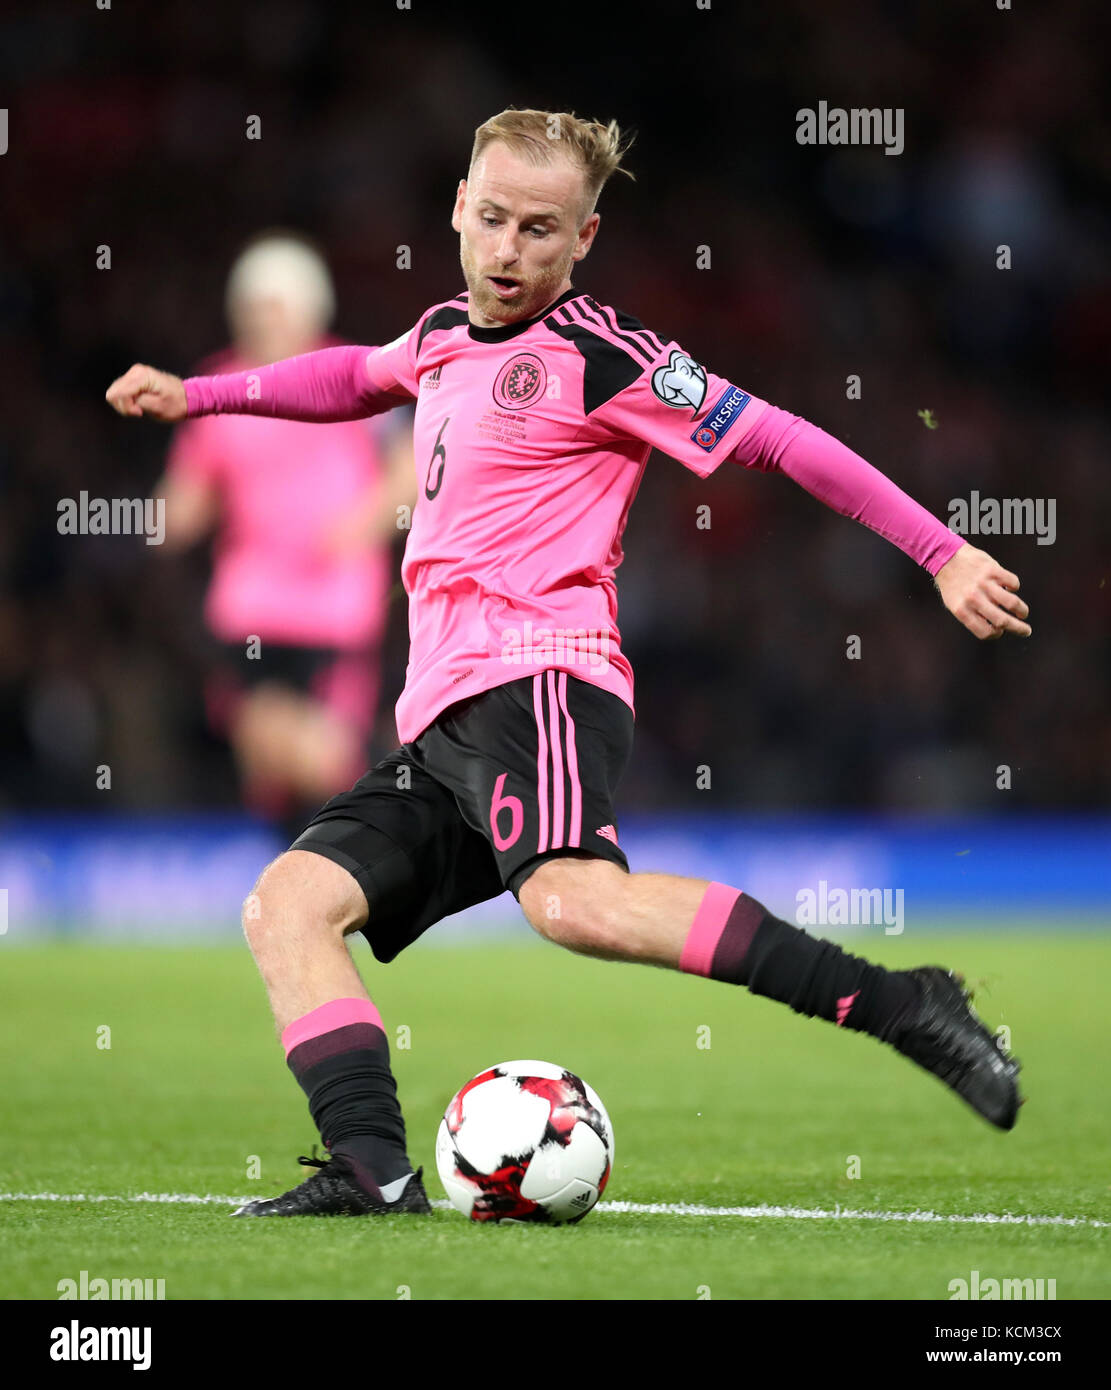 Scotland S Barry Bannan During The 2018 Fifa World Cup Qualifying Group F Match At Hampden Park Glasgow Press Association Photo